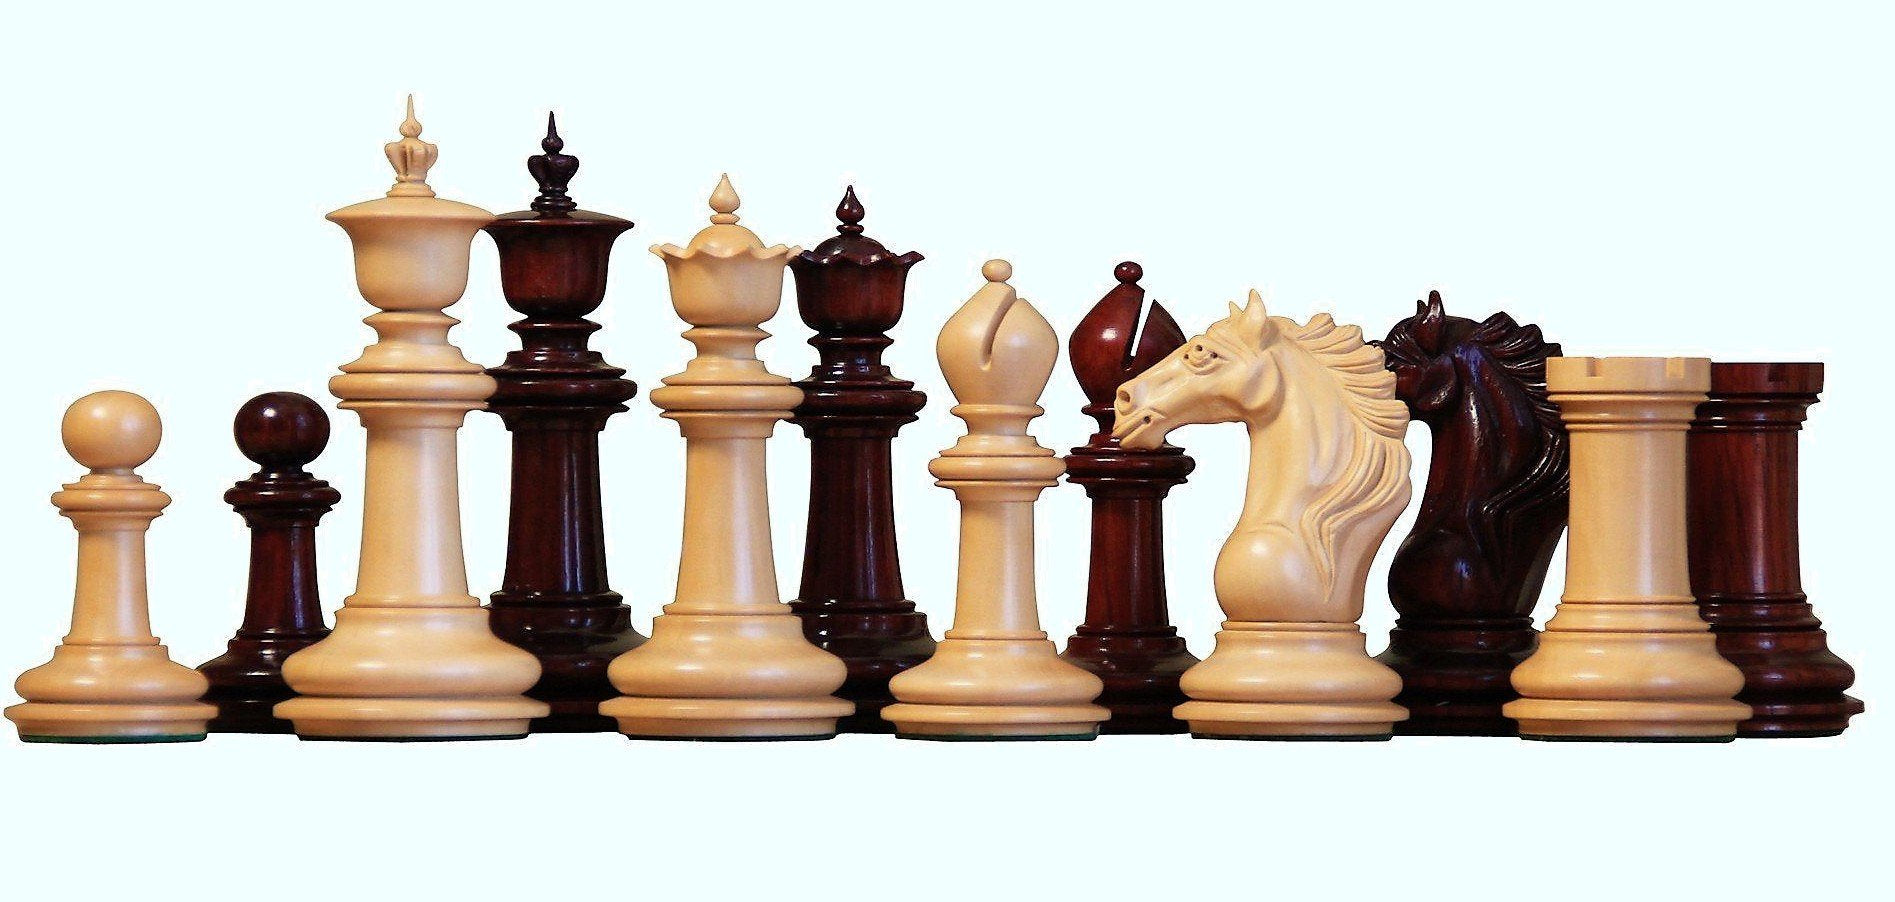 SHOWCASE YOUR CHESS SET